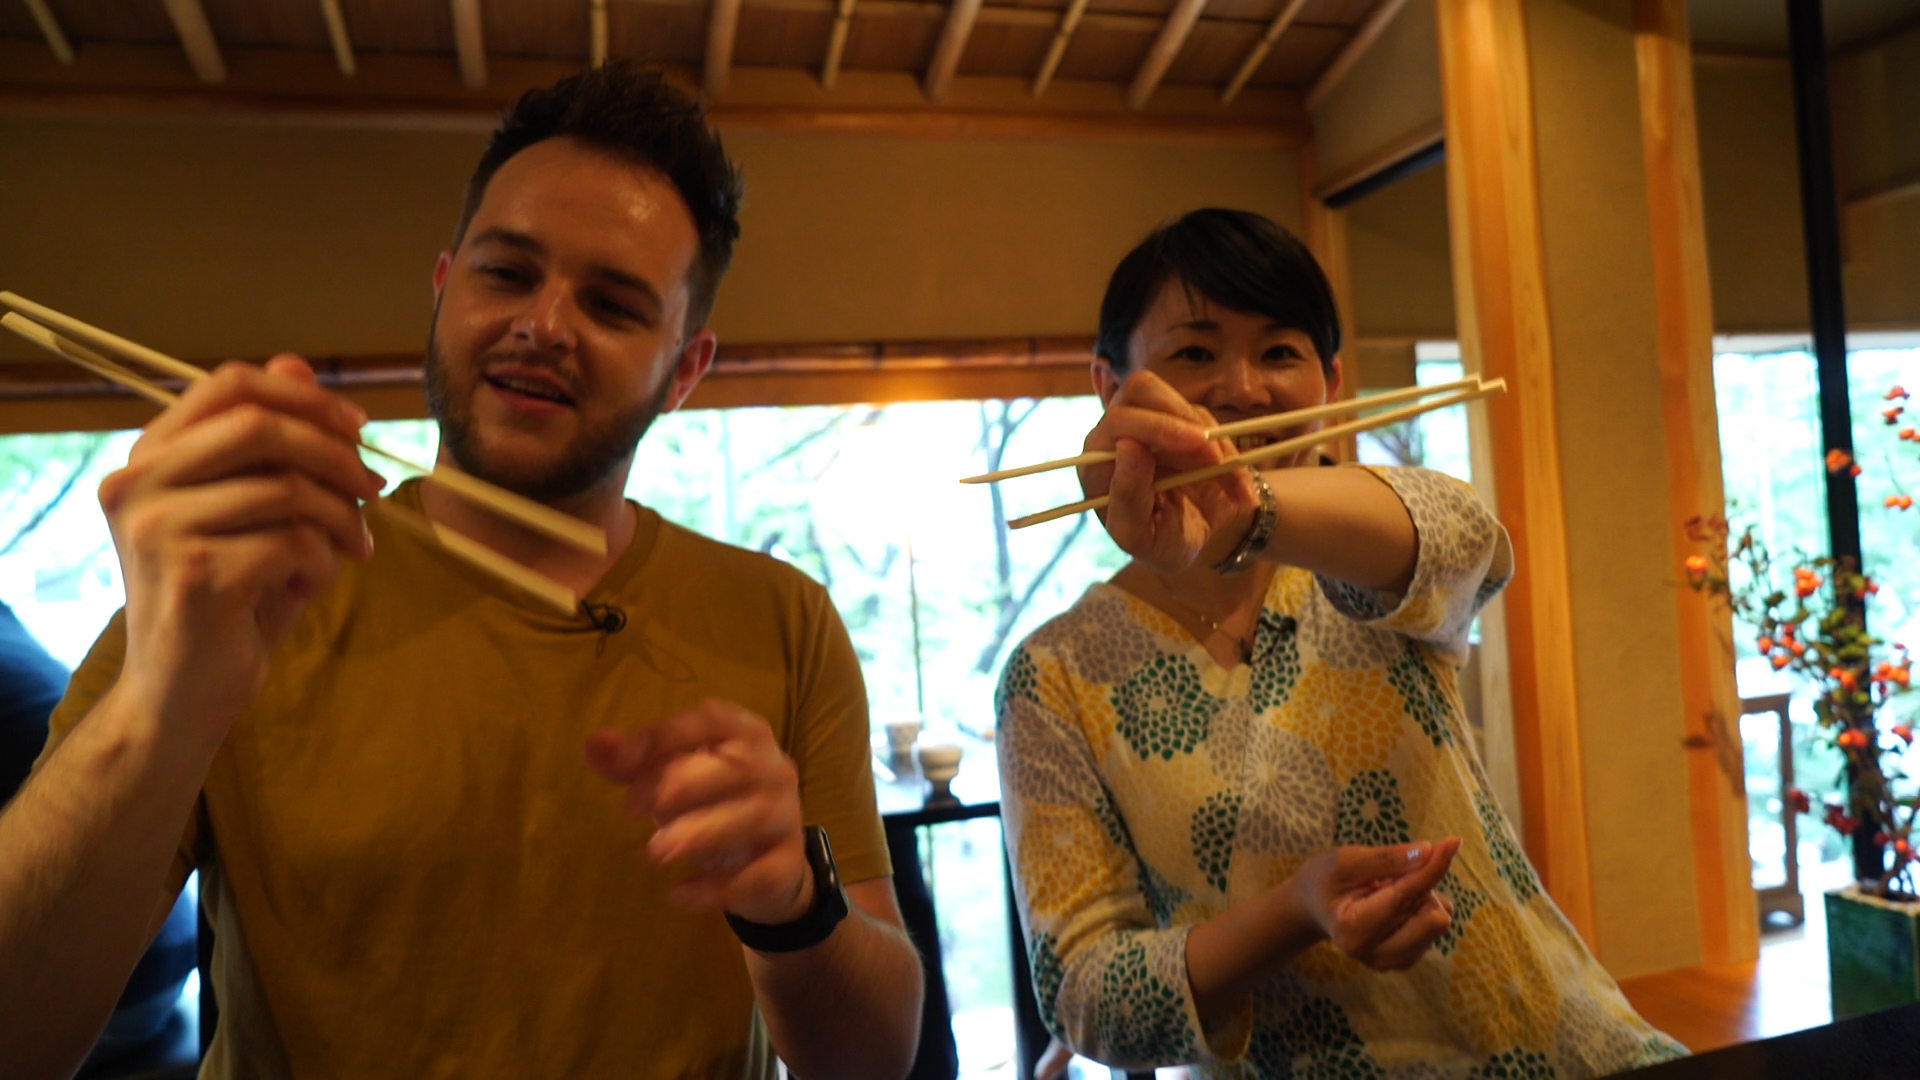 Dan learning to use chopsticks in Tokyo